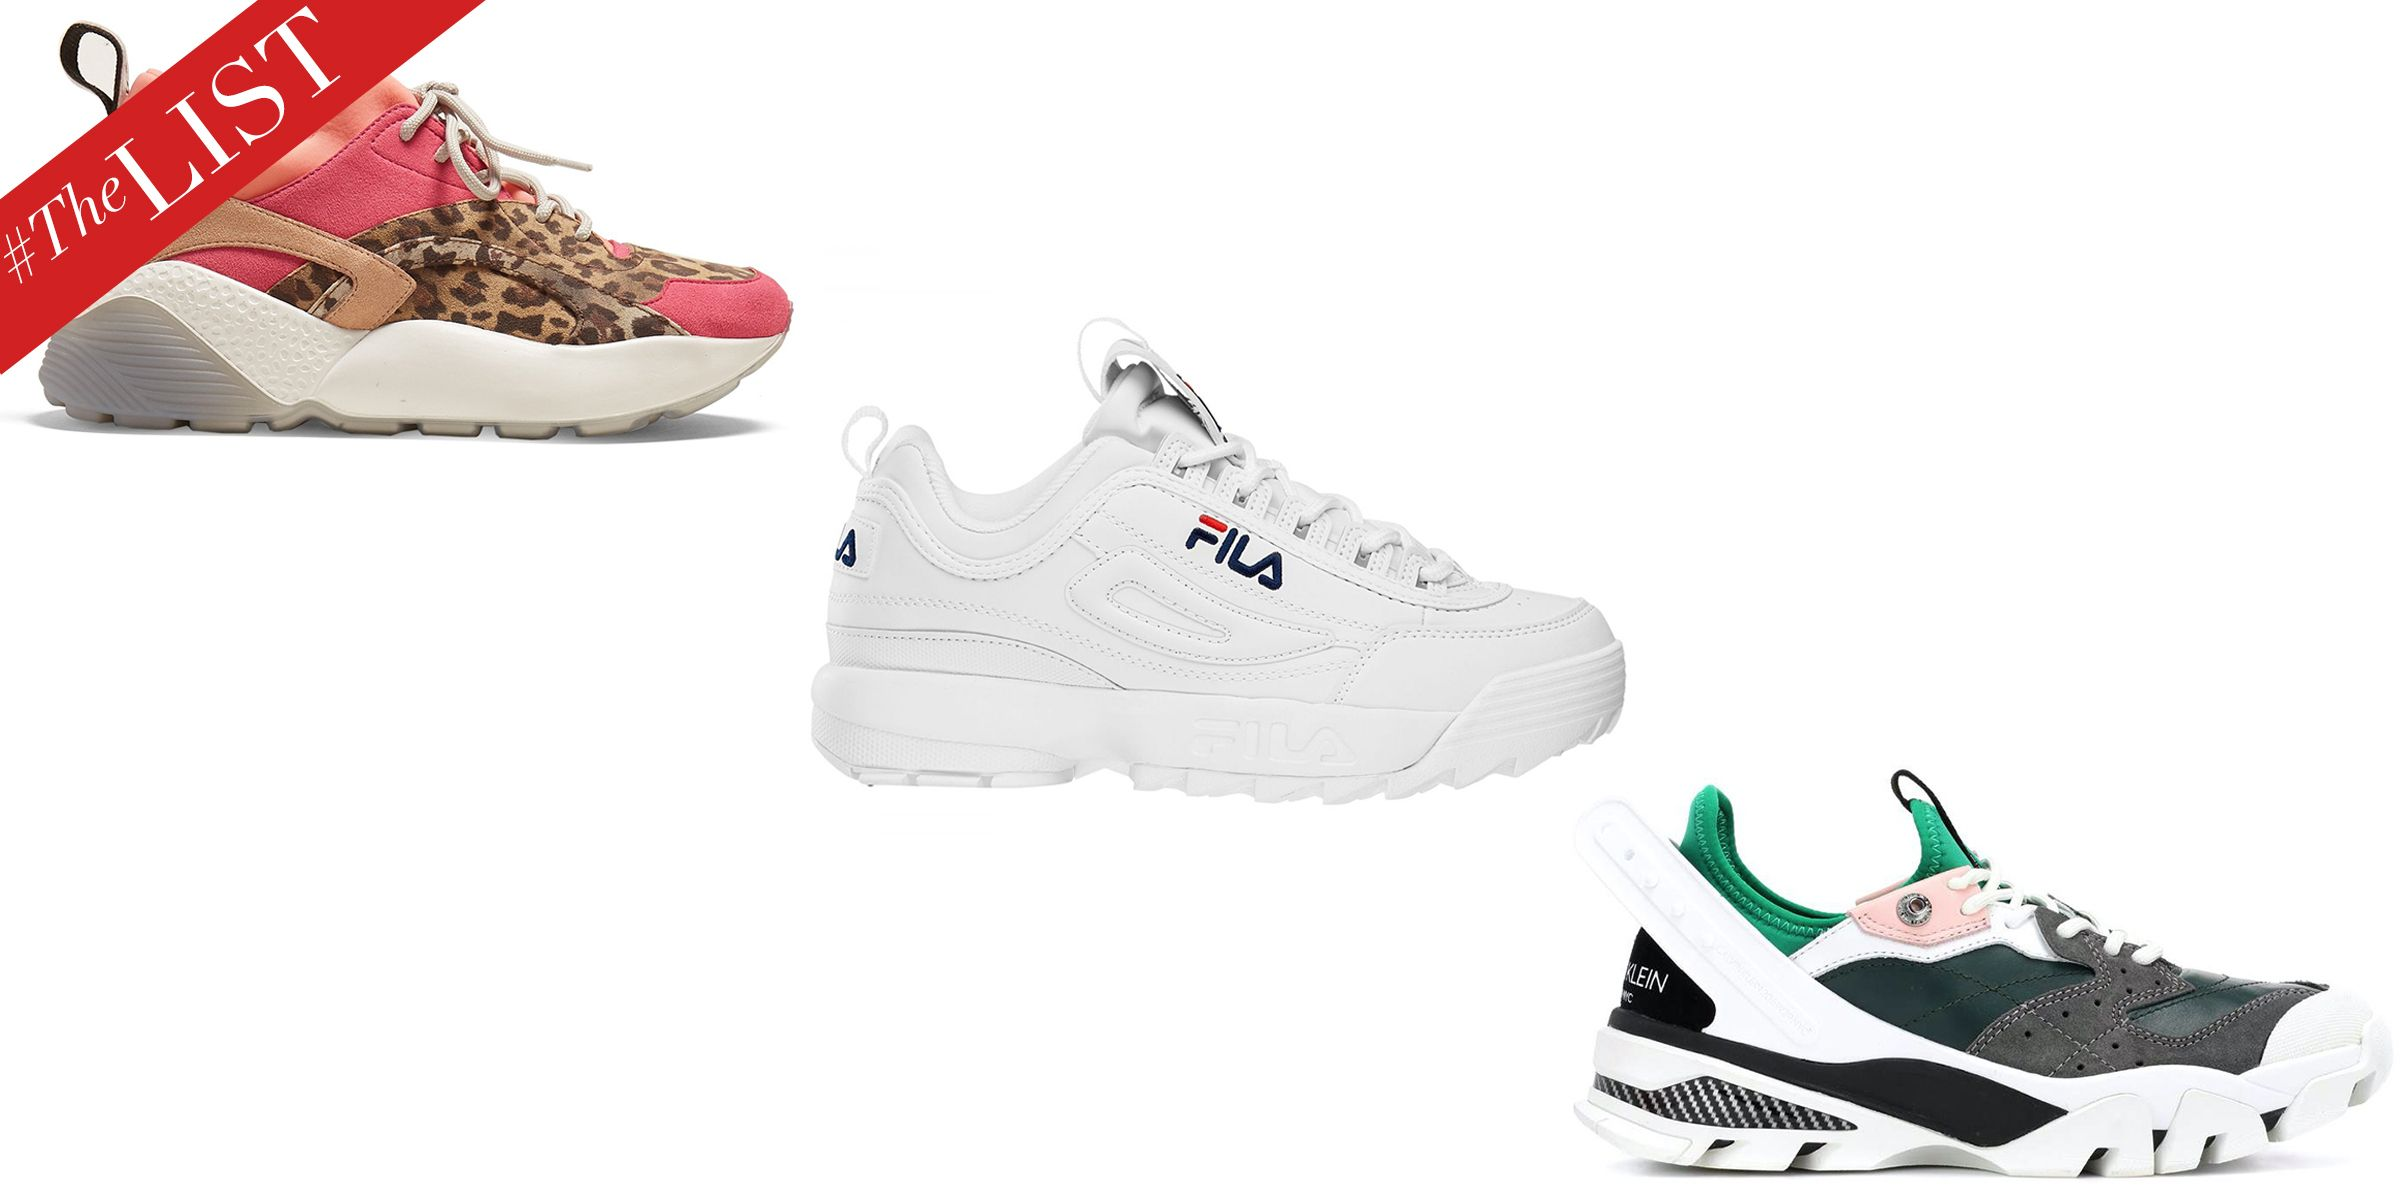 fila shoes trend 2019 hairstyles with bangs